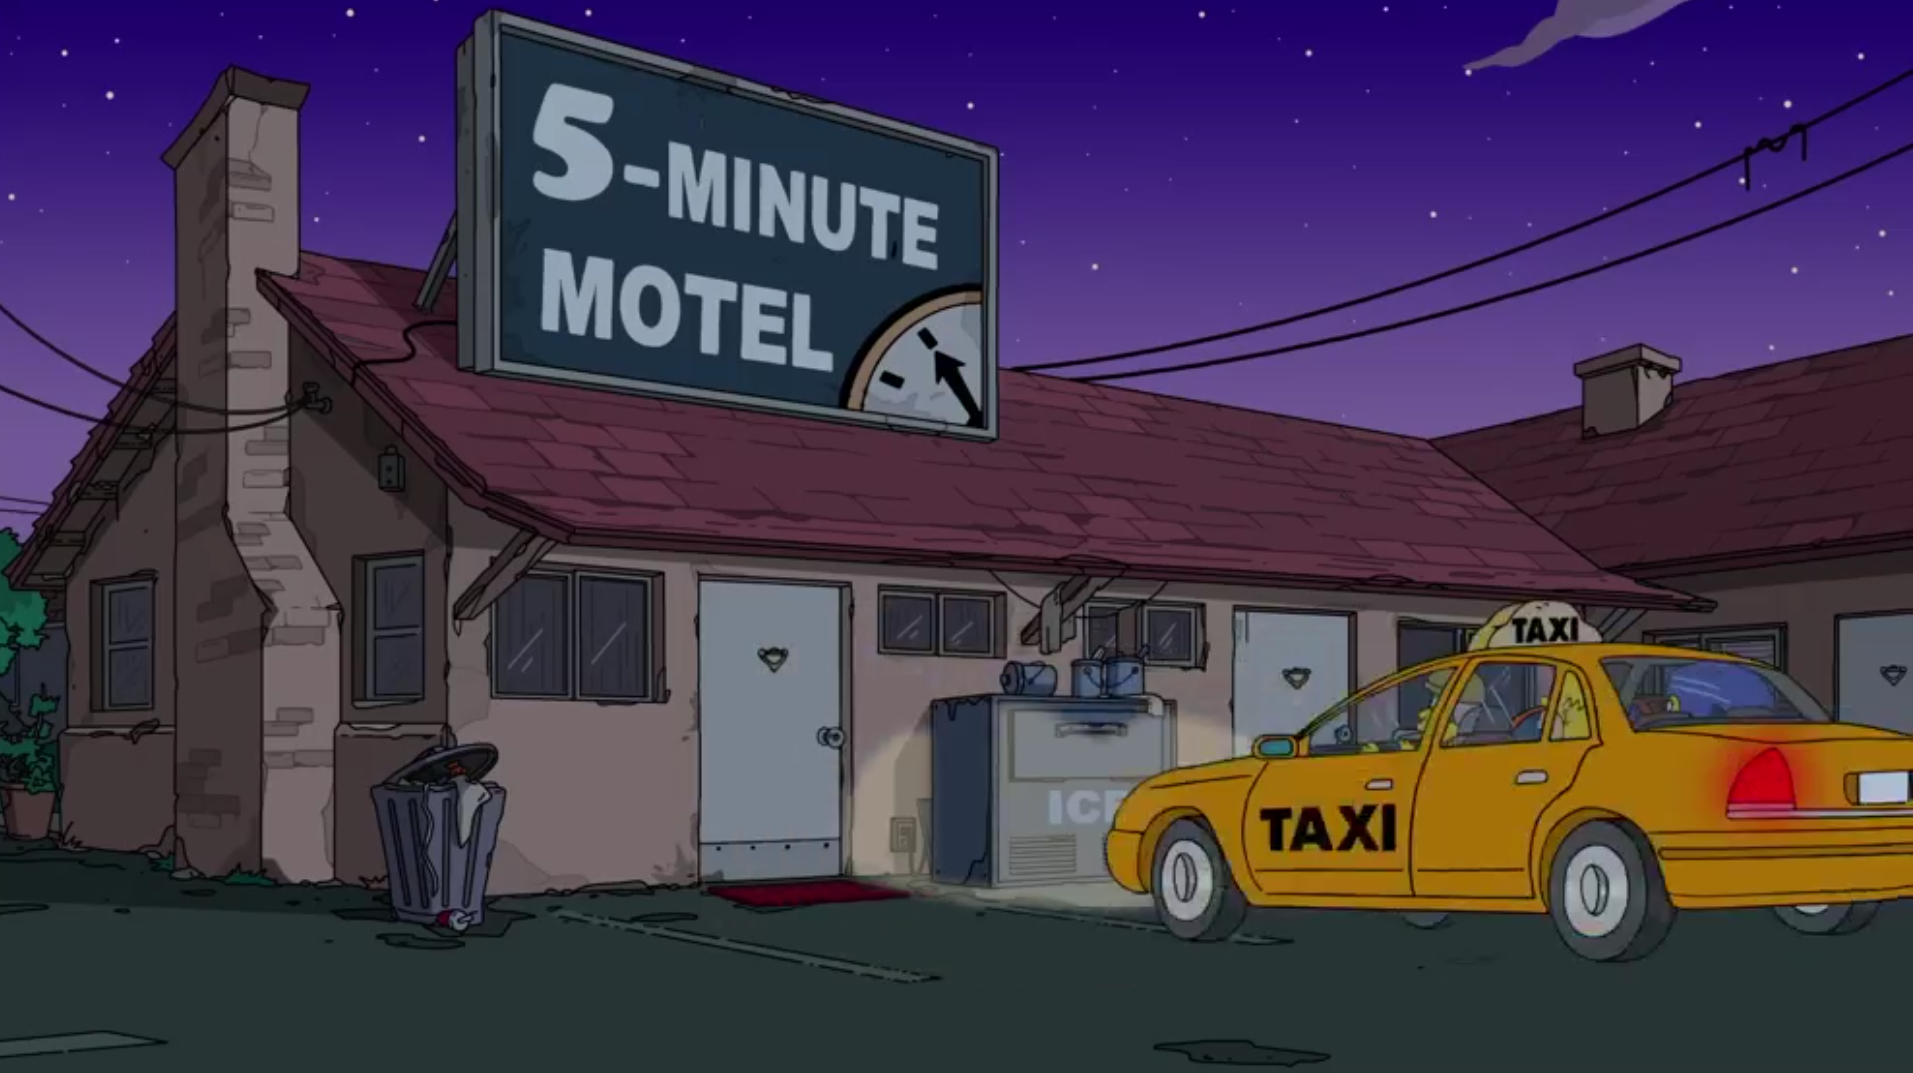 5-Minute Motel.png